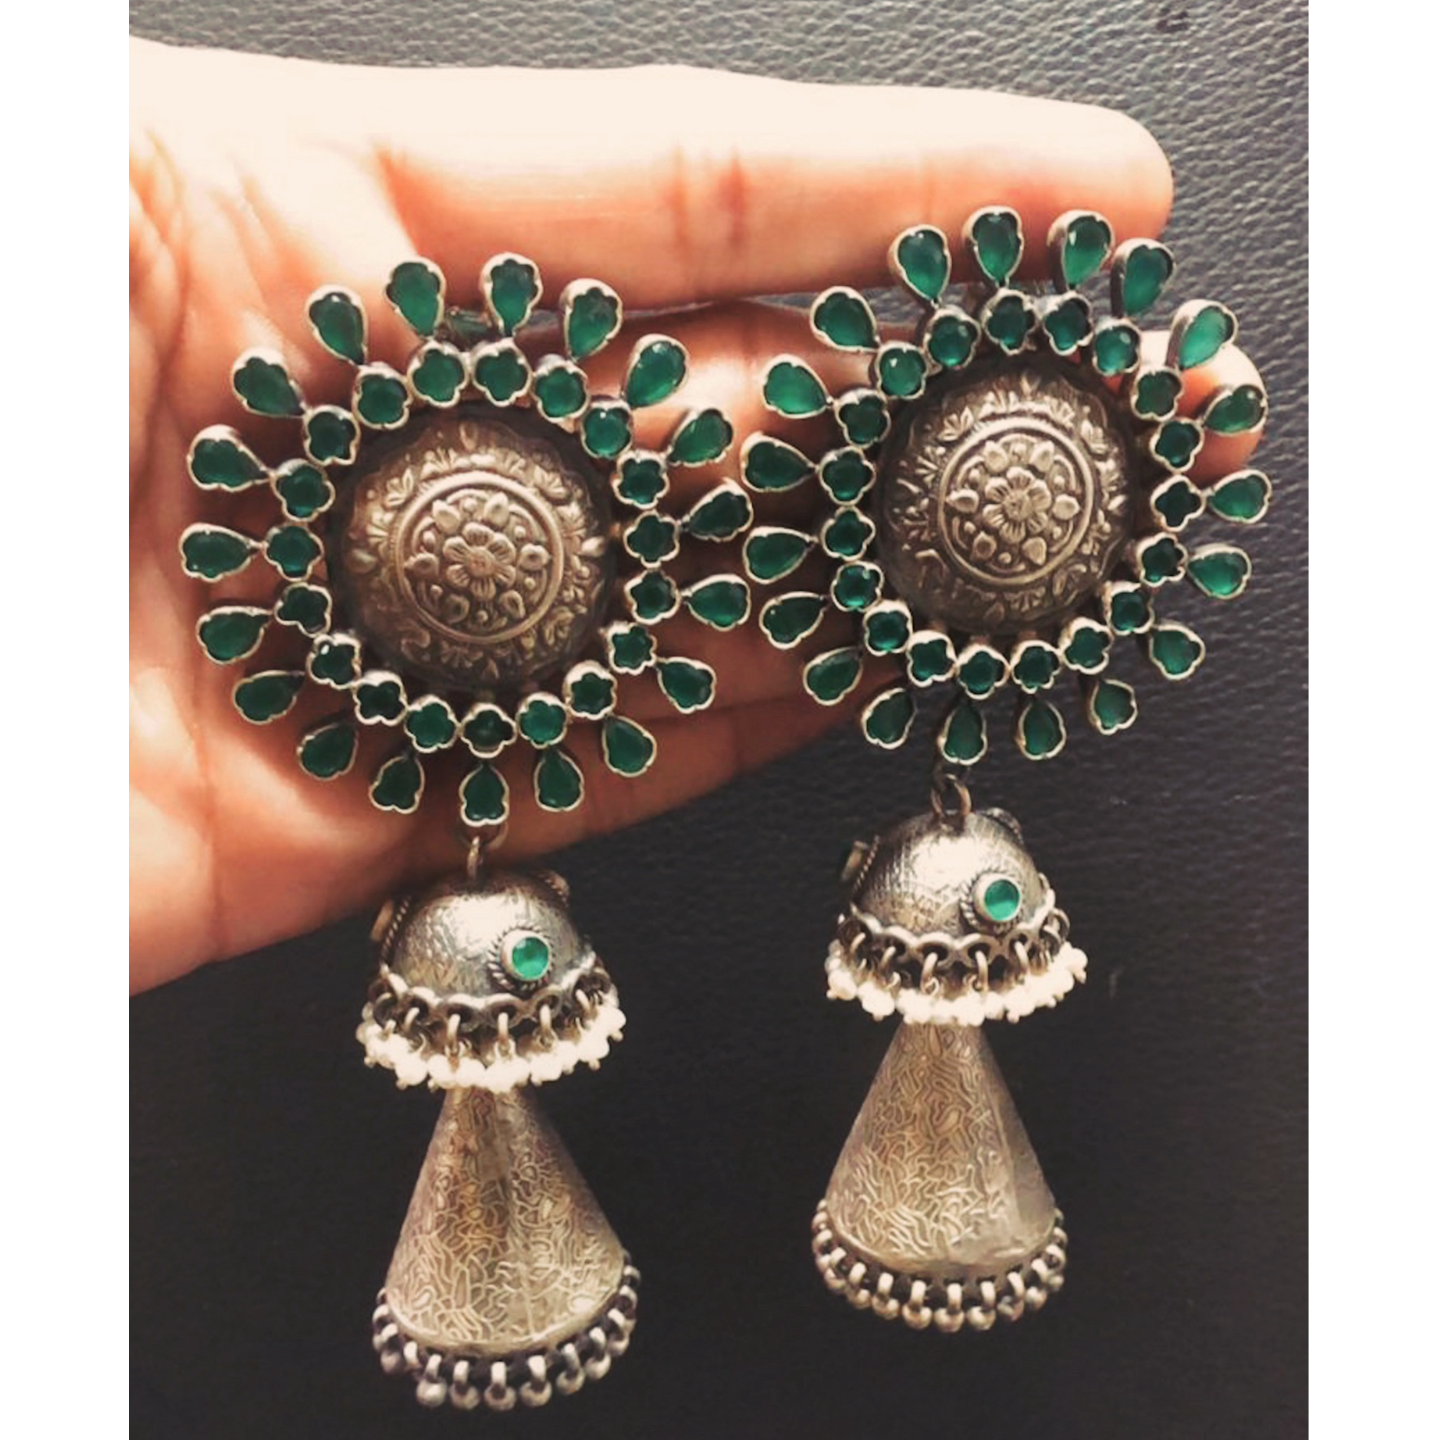 Green Stone Silver Earring - Round design